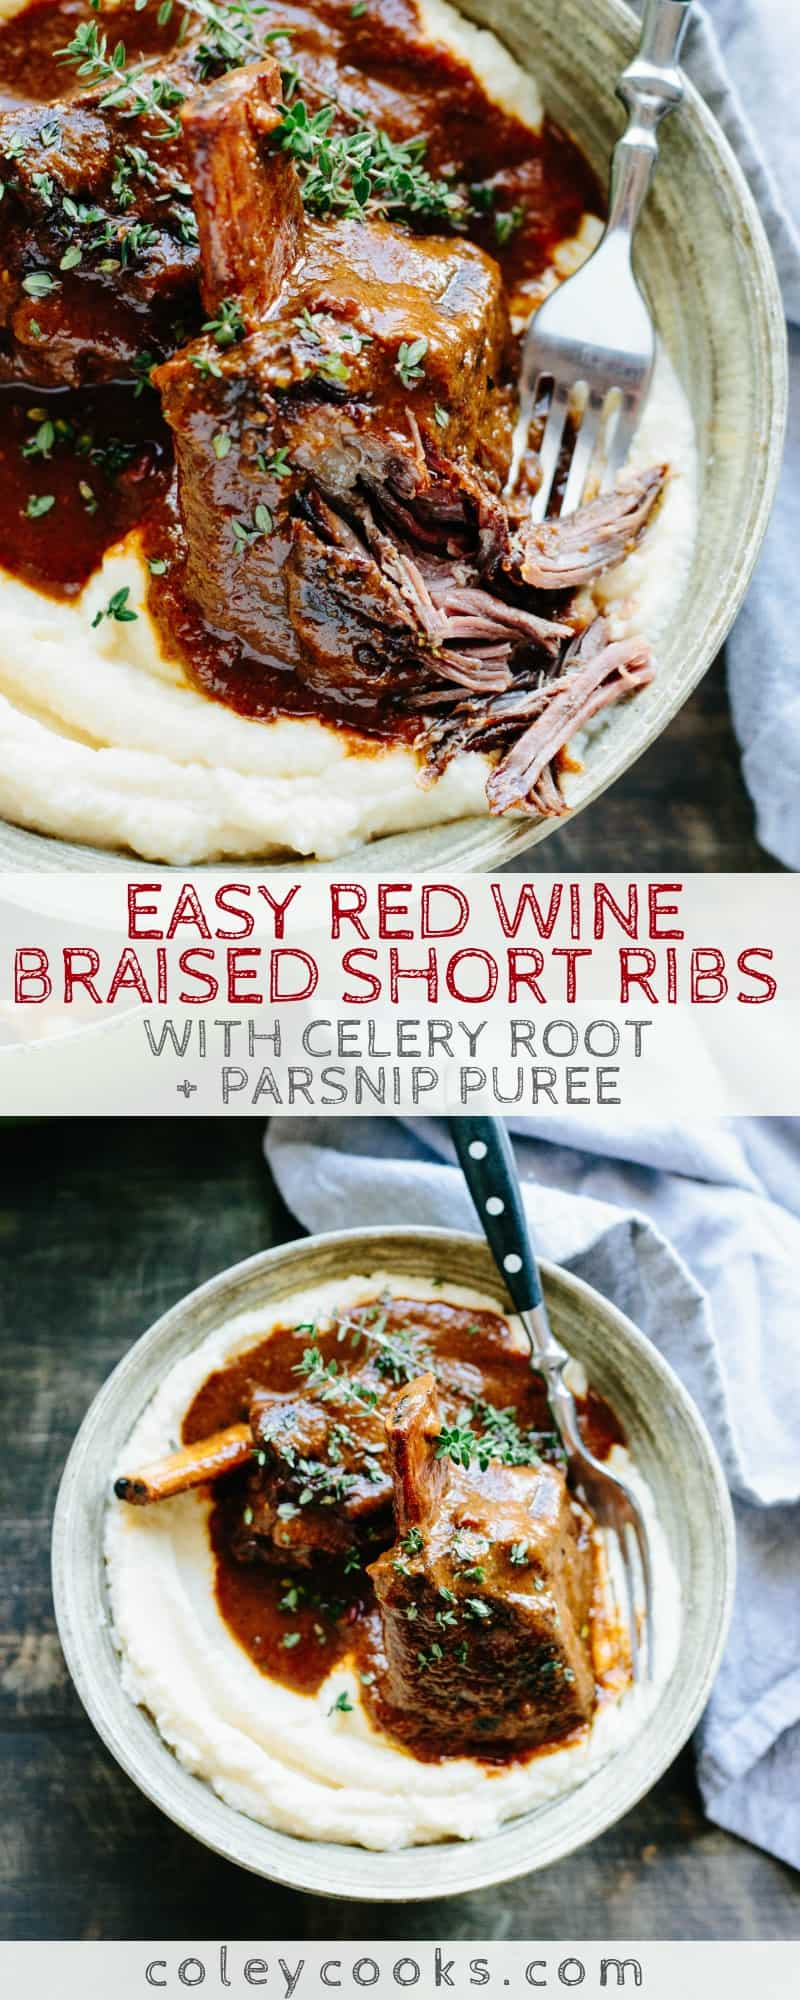 Easy Red Wine Braised Short Ribs with Parsnip Celery Root Puree is a delicious winter comfort food recipe that's gluten free, Paleo and perfect for a cozy weeknight dinner #easy #beef #glutenfree #shortrib #recipe #paleo #redwine #braised #crockpot #parsnip #celeriac #comfortfood | ColeyCooks.com